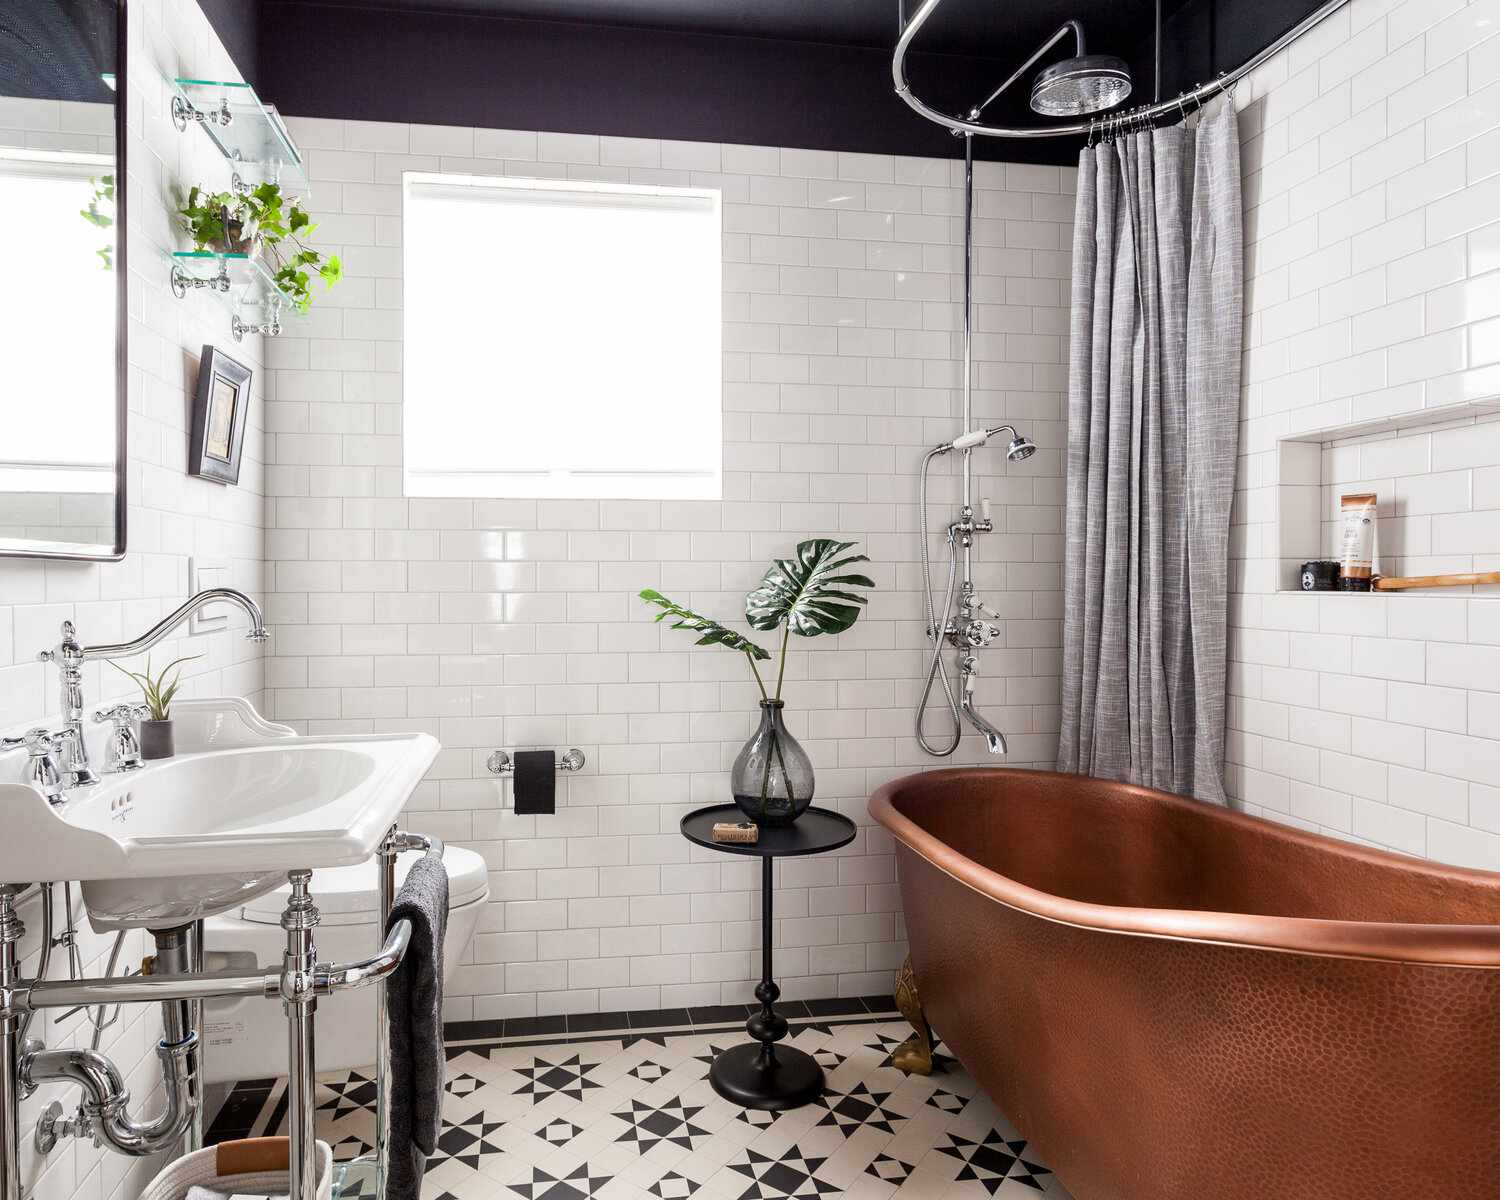 A statement-making small primary bathroom with boldly tiled floors, a copper clawfoot tub, and several glass shelves